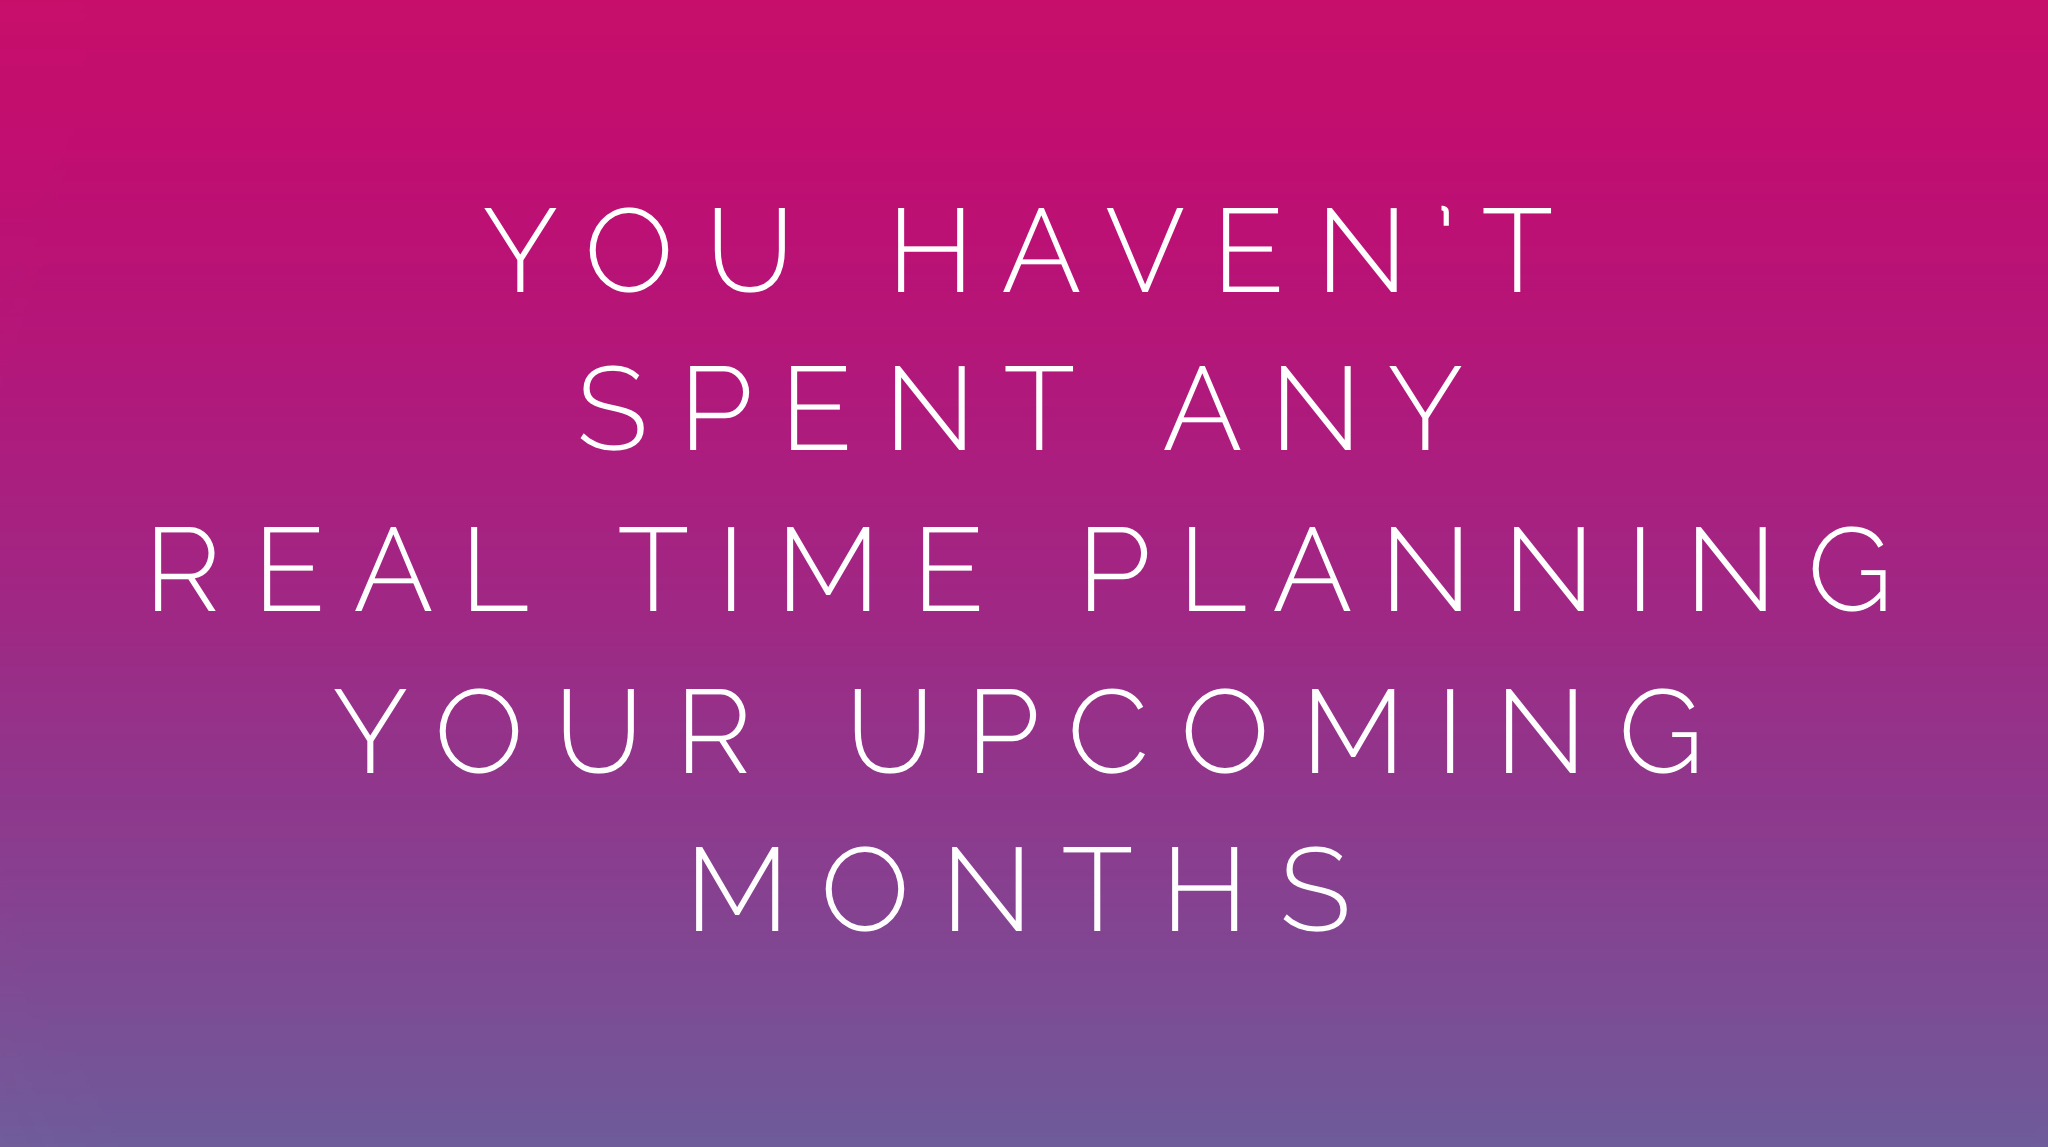 You haven't spent any real time planning your upcoming months